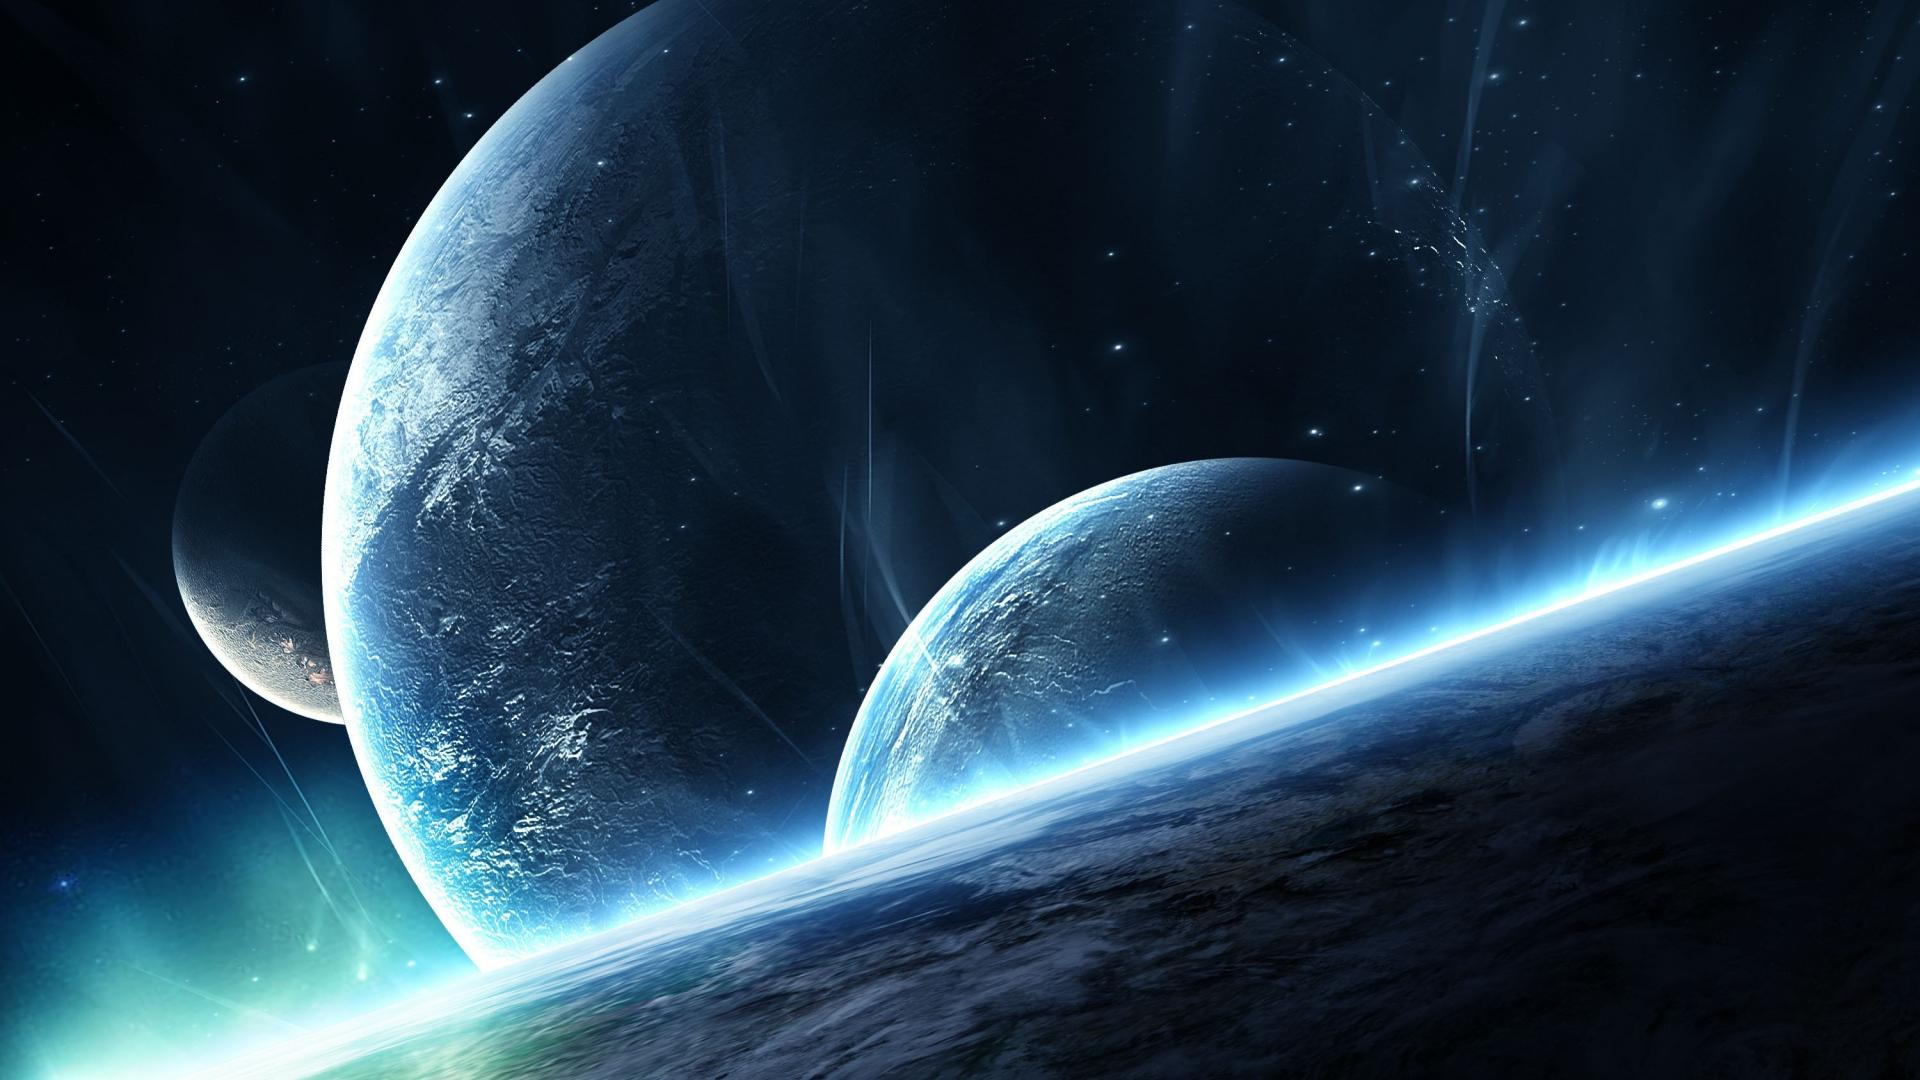 Earth earthbound other space sun blue wallpaper 82103 1920x1080